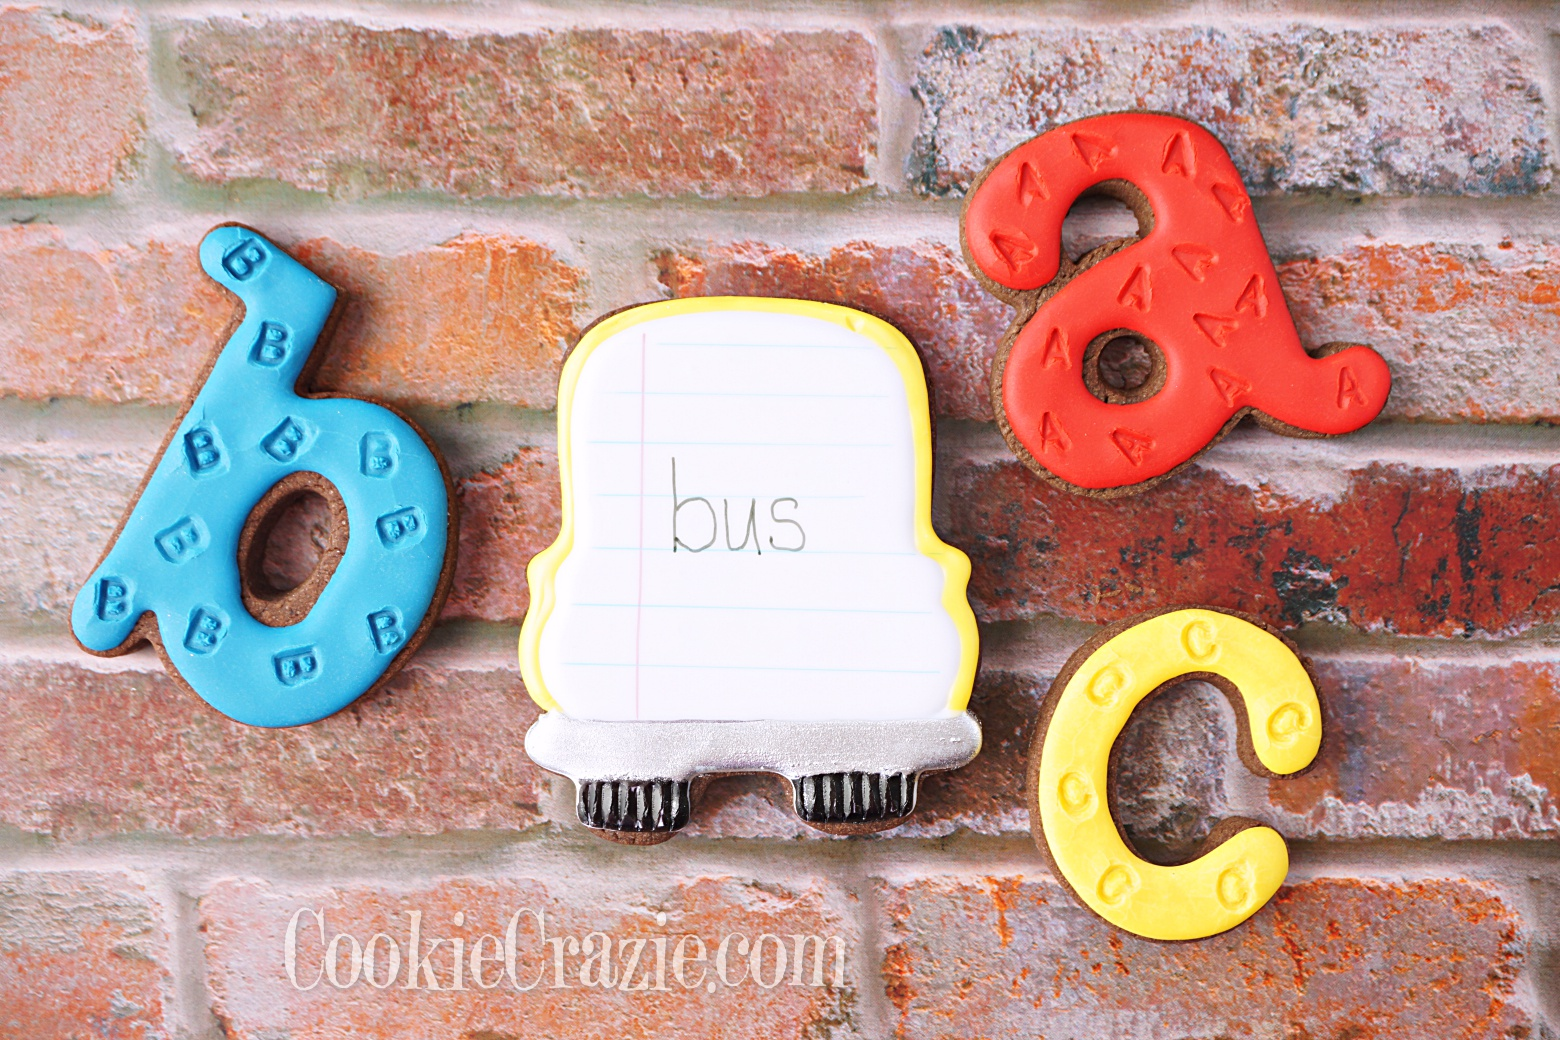 School Bus Decorated Sugar Cookie YouTube video  HERE